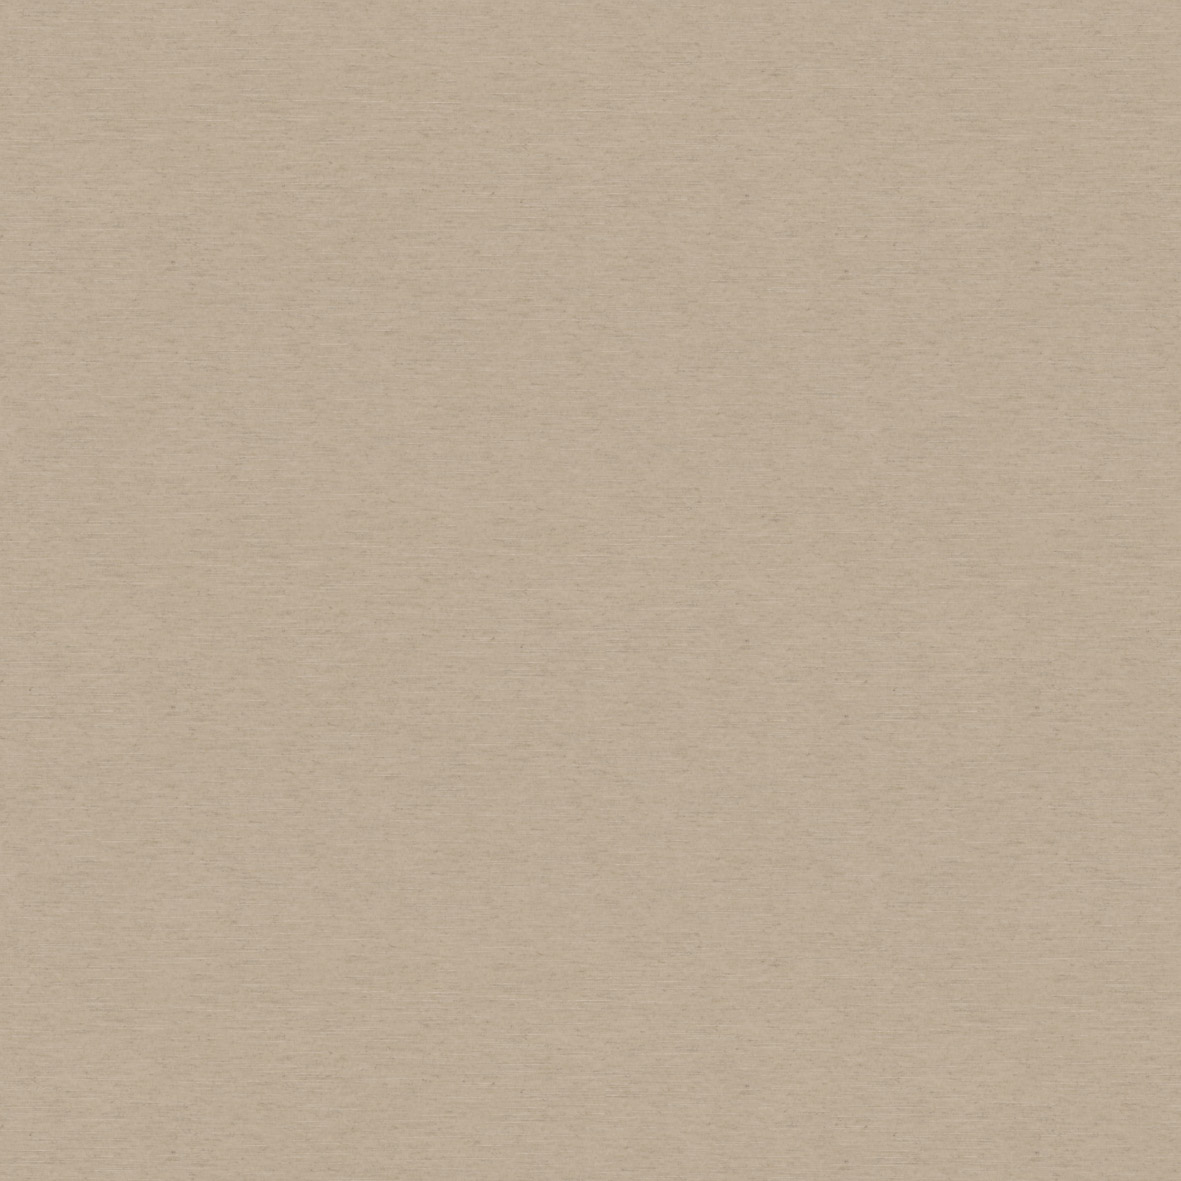 Roller_Swatch_Linenweave_Sand_RE15784